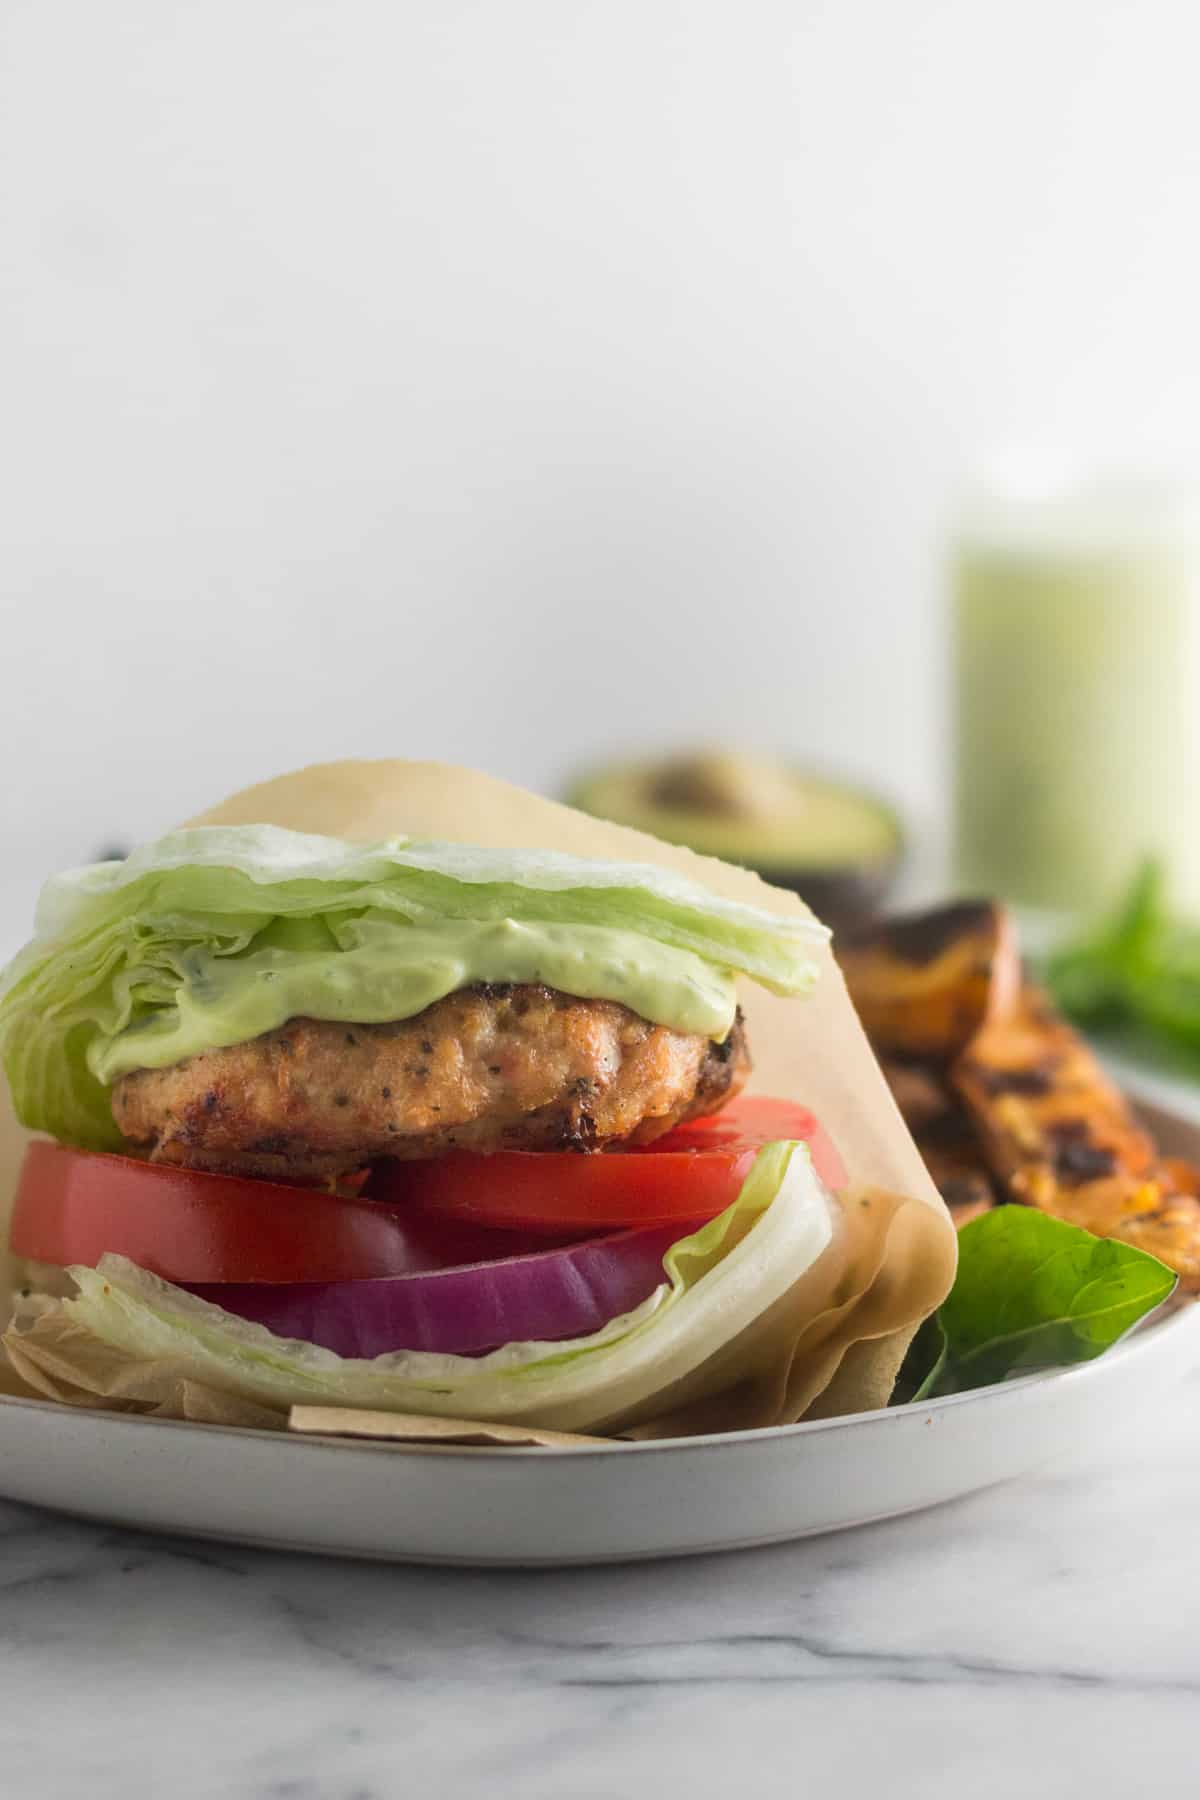 Sun dried tomato chicken burger wrapped in a lettuce wrap on a plate with sweet potato fries with an avocado basil aioli and an avocado behind it